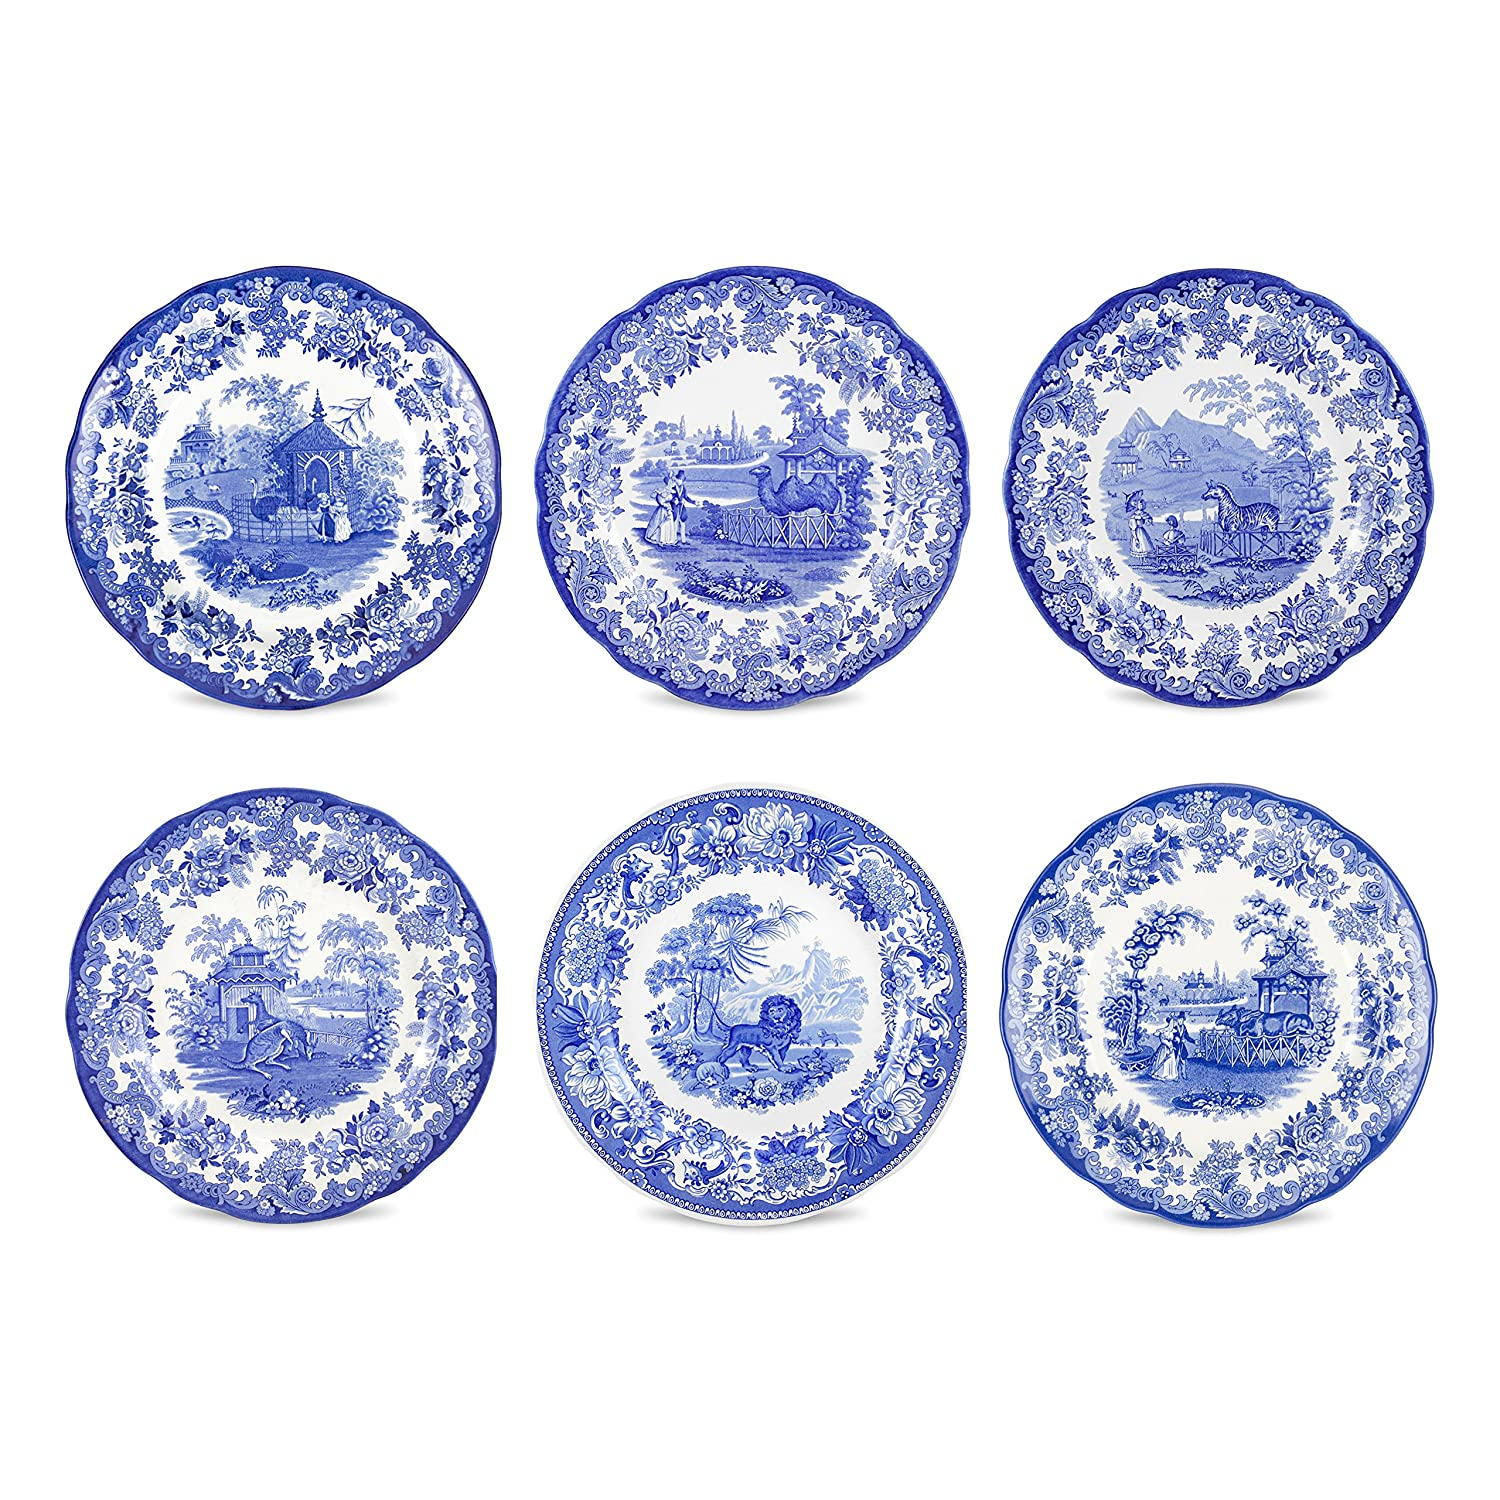 Amazon.com | Spode Blue Room Zoological Plates Set of 6 Assorted Motifs Dinnerware Accent Plates  sc 1 st  Amazon.com & Amazon.com | Spode Blue Room Zoological Plates Set of 6 Assorted ...